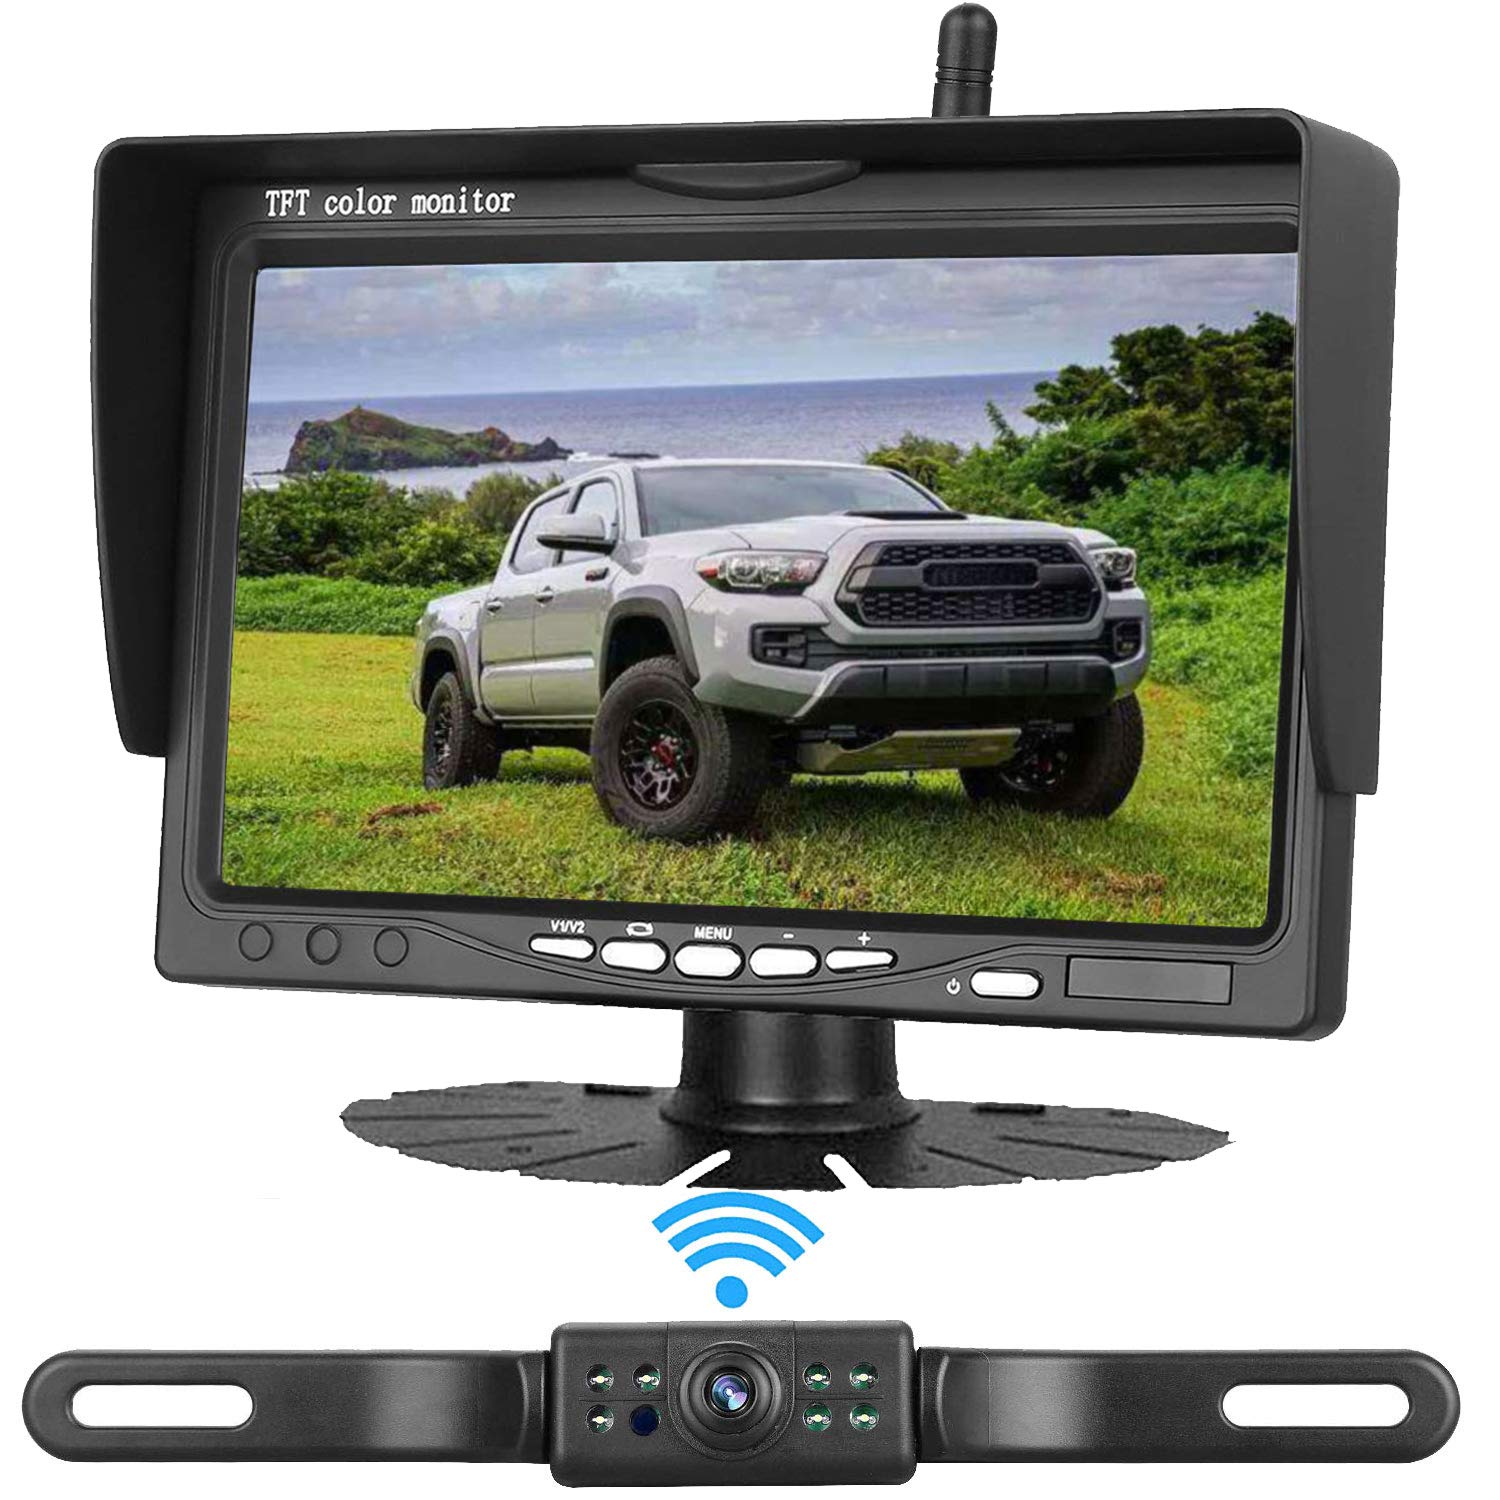 Emmako Wireless Backup Camera 7 inch Monitor HD Color System For Cars/SUVs/Pickups/Trucks/Campers/Bus/Minivans IP68 Waterproof Night Vision Rear/Front View Guide Lines On/Off by Emmako